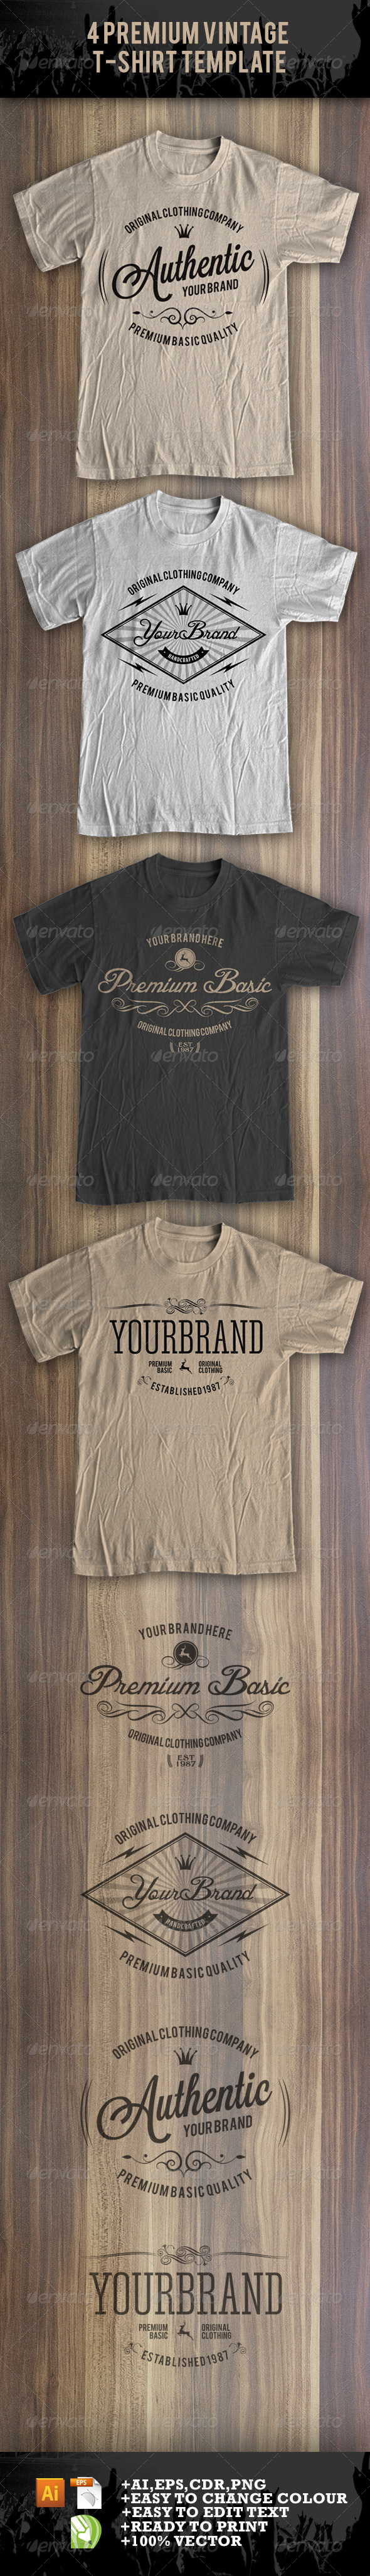 GraphicRiver 4 Premium T-Shirt Template 8369029